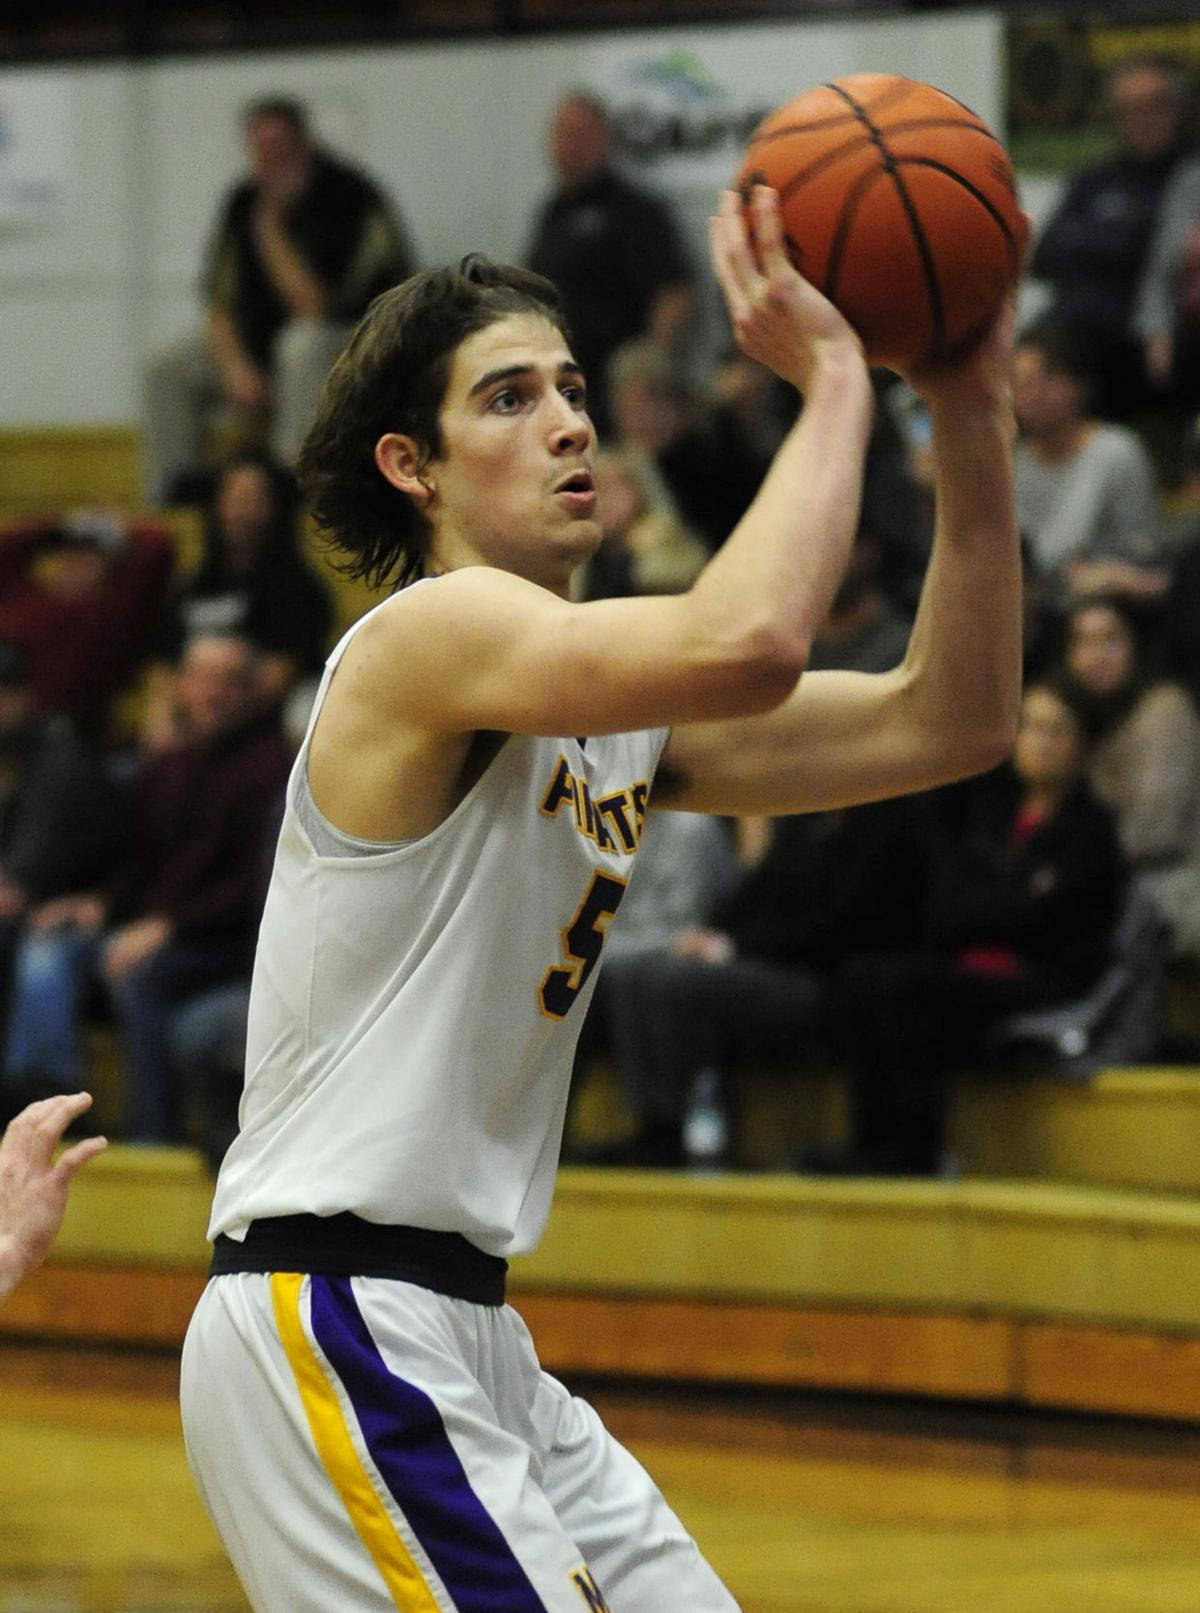 Marshfield holds out to beat Junction City, 63-52